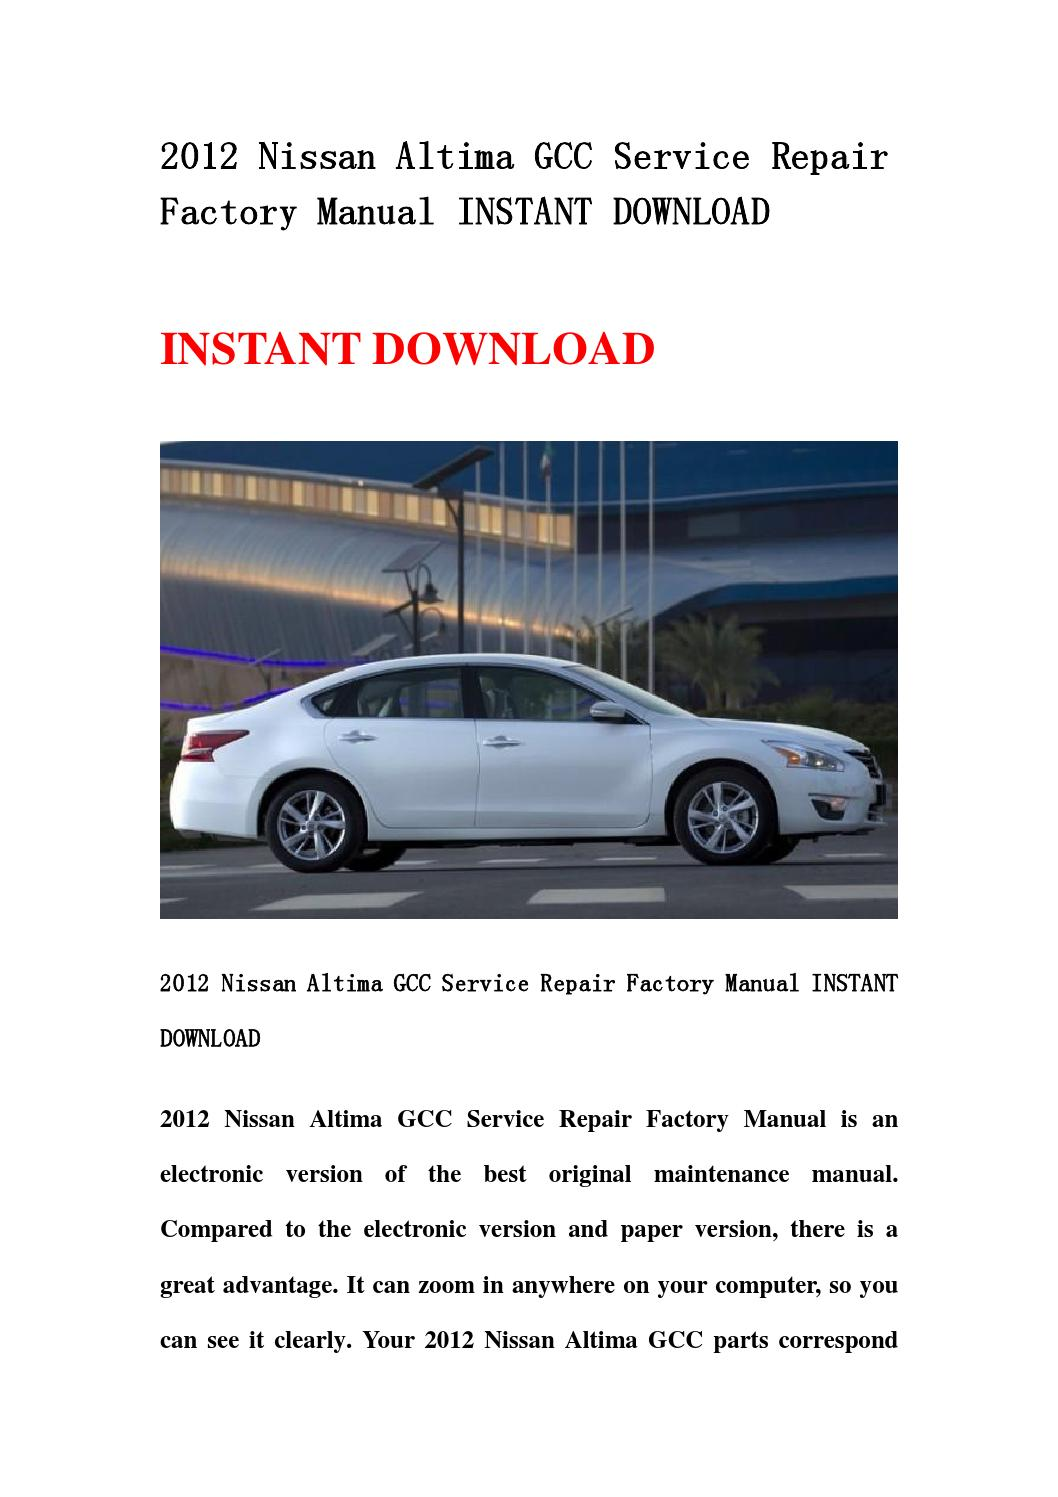 2012 nissan altima gcc service repair factory manual instant download by  kaimen - issuu